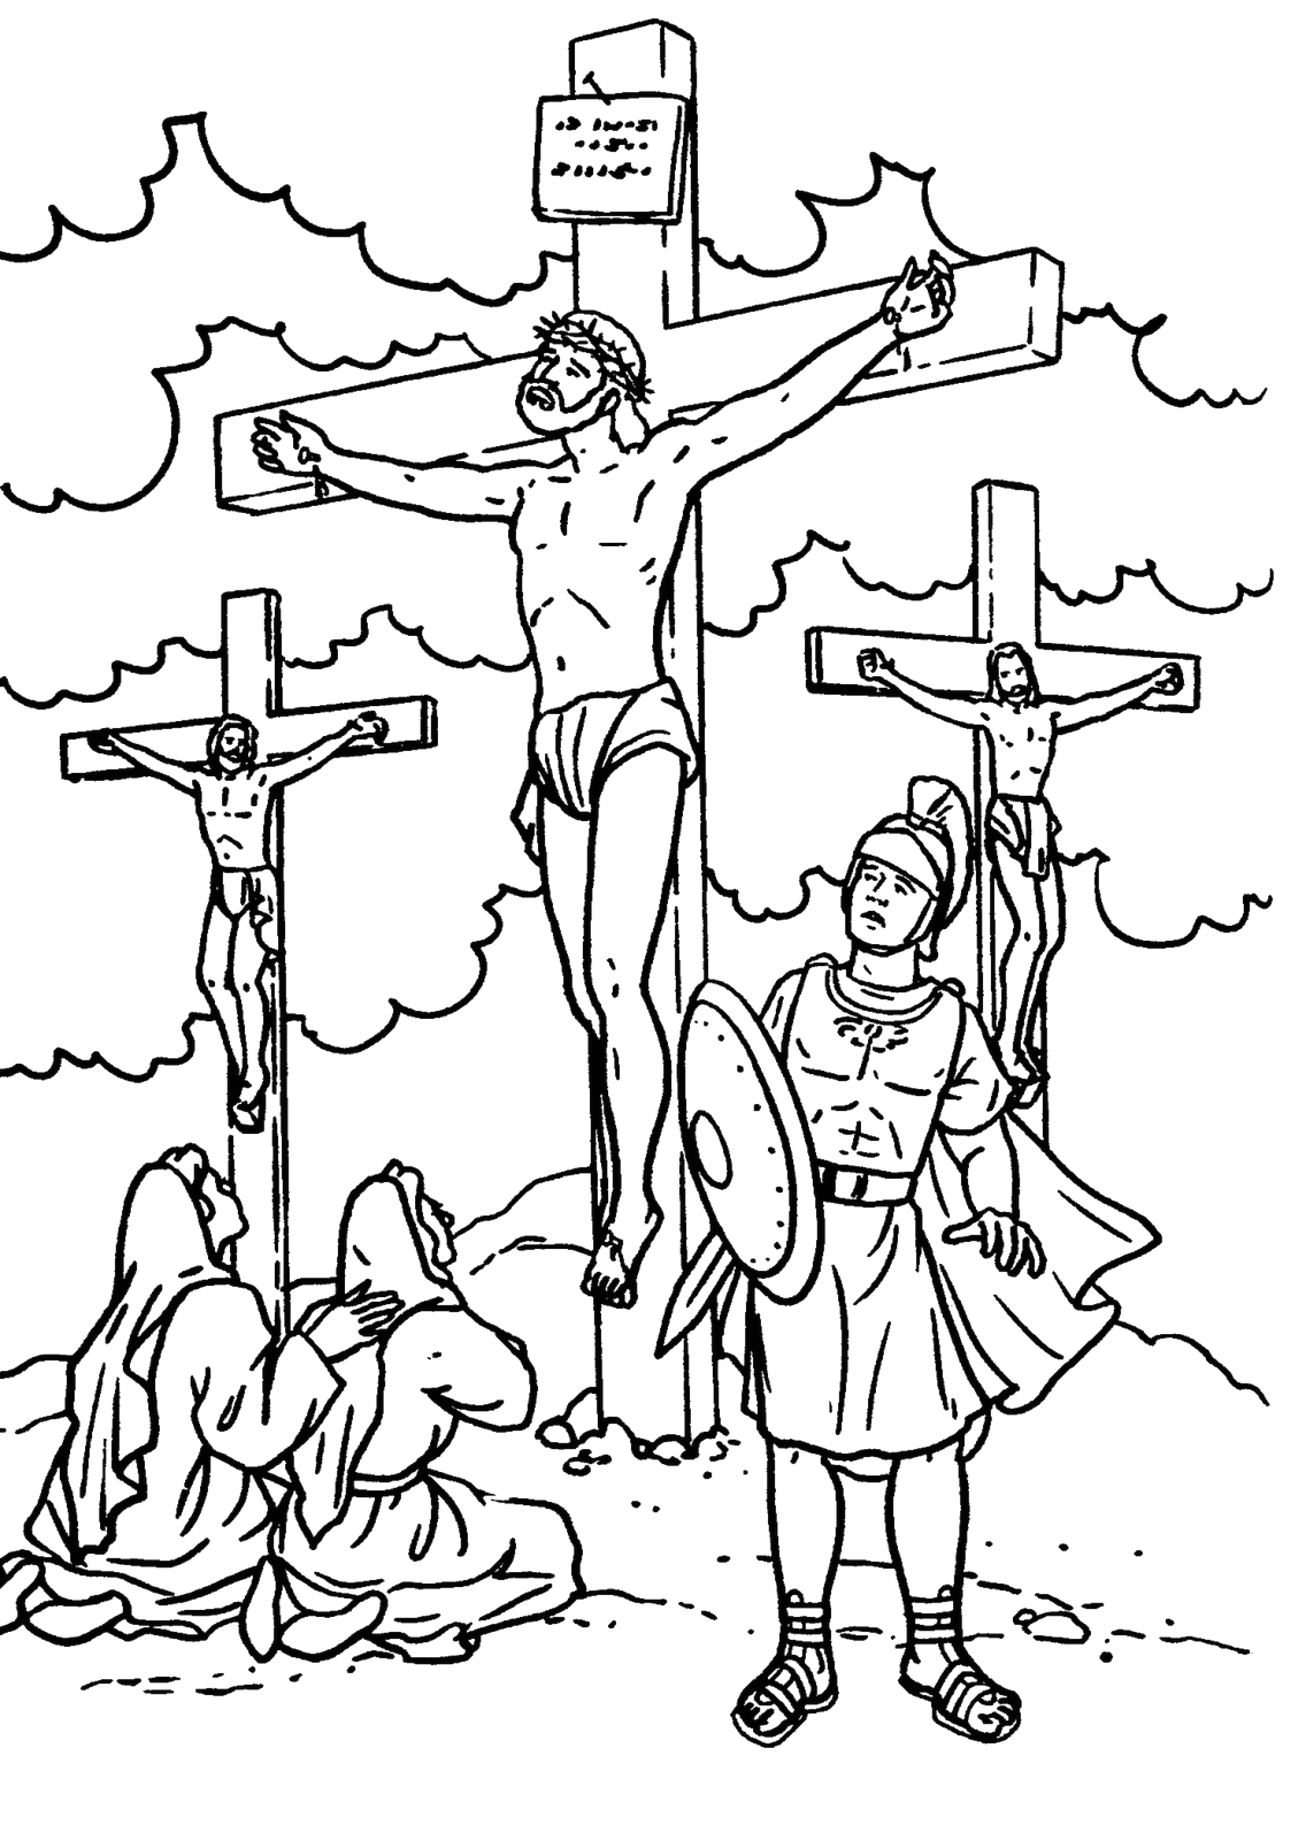 Coloring Pages Jesus Died On the Cross Jesus Died the Cross Coloring Page at Getdrawings